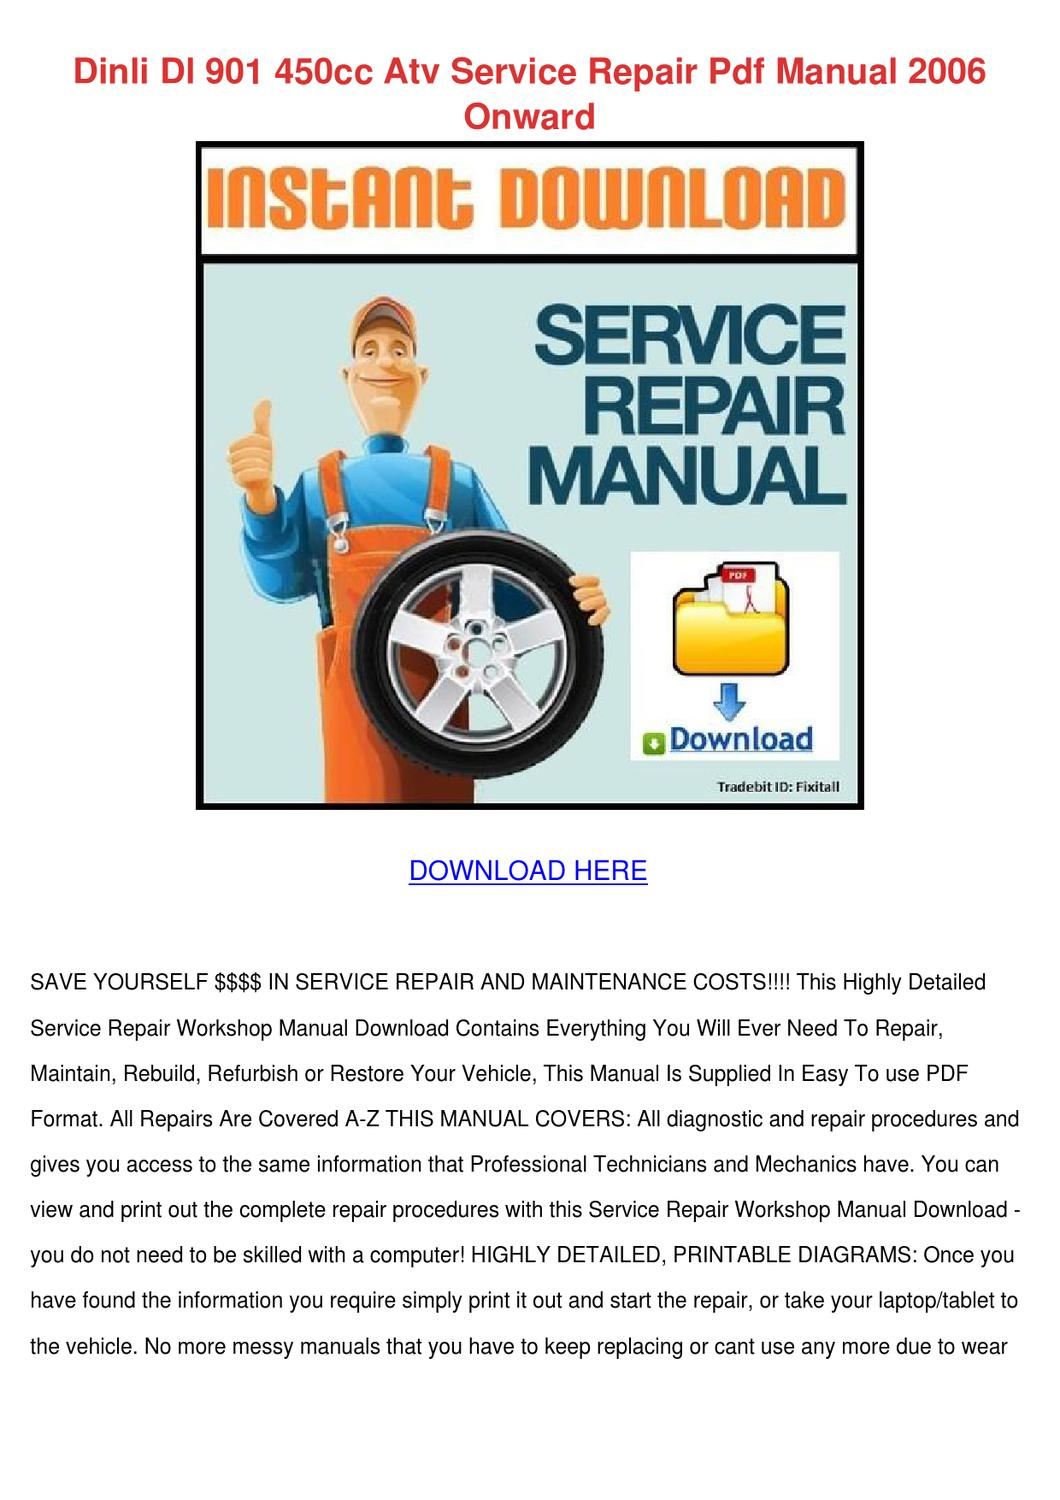 Dinli Dl 901 450cc Atv Service Repair Pdf Man by CatalinaBeckwith - issuu